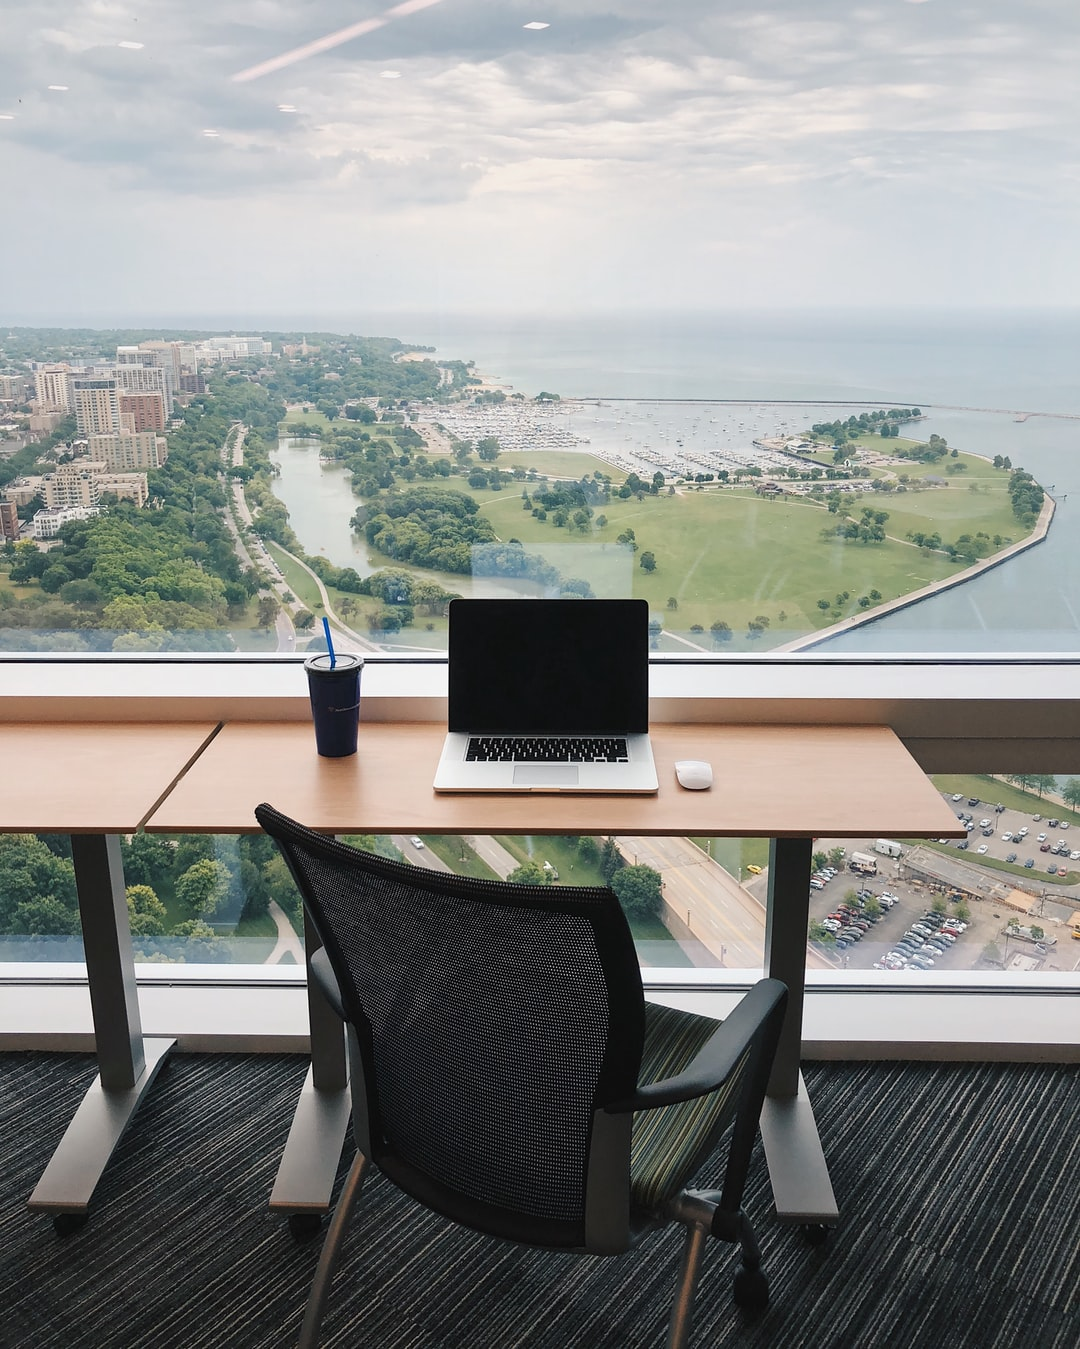 The view from my office at Northwestern Mutual in Milwaukee, WI.